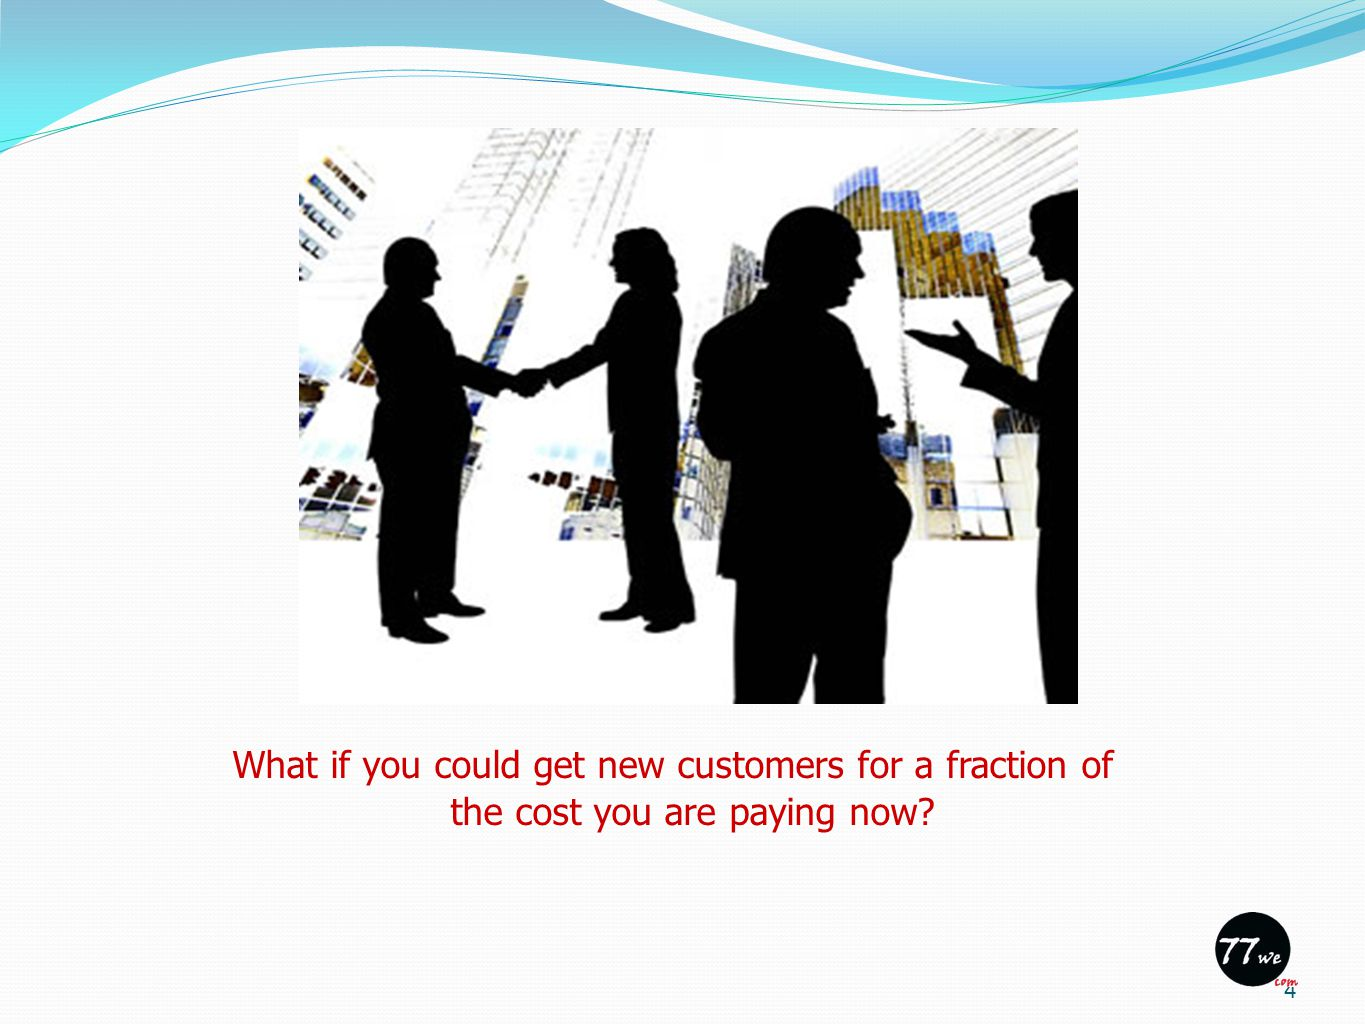 What if you could get new customers for a fraction of the cost you are paying now 4